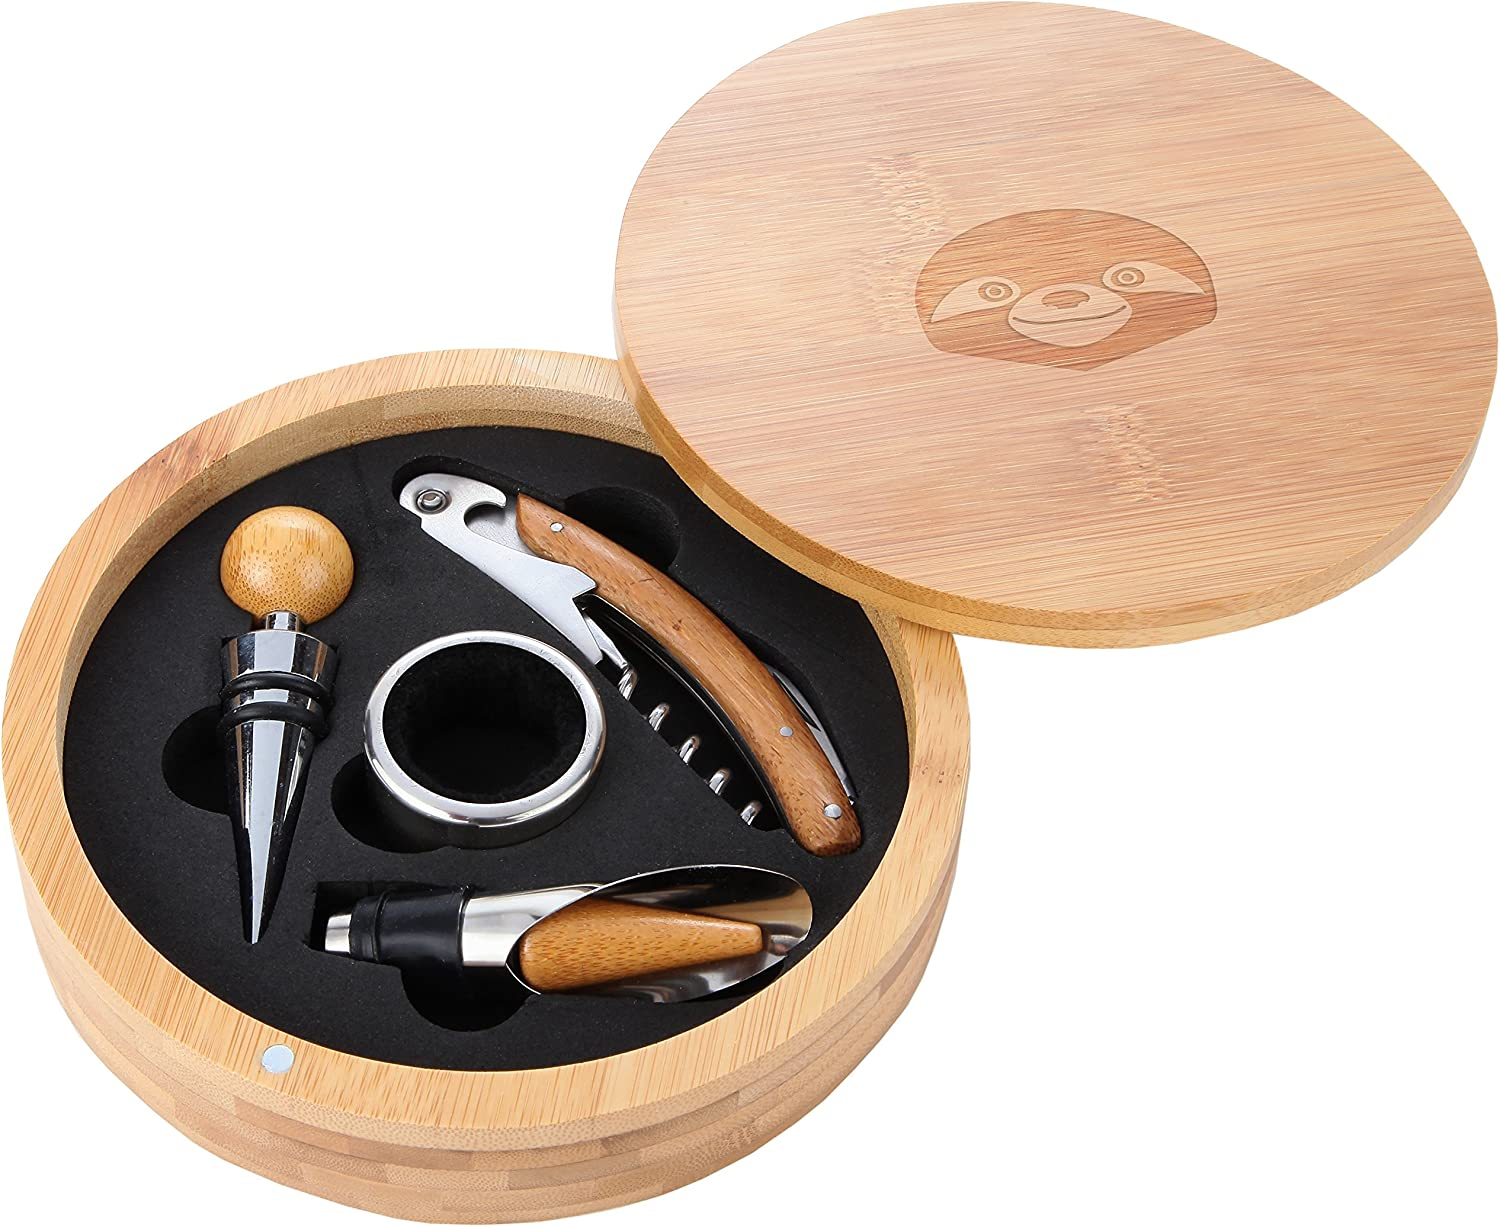 Sloth Face Wooden Accessories Company Wine Tool - W Spring Recommendation new work Portable Set